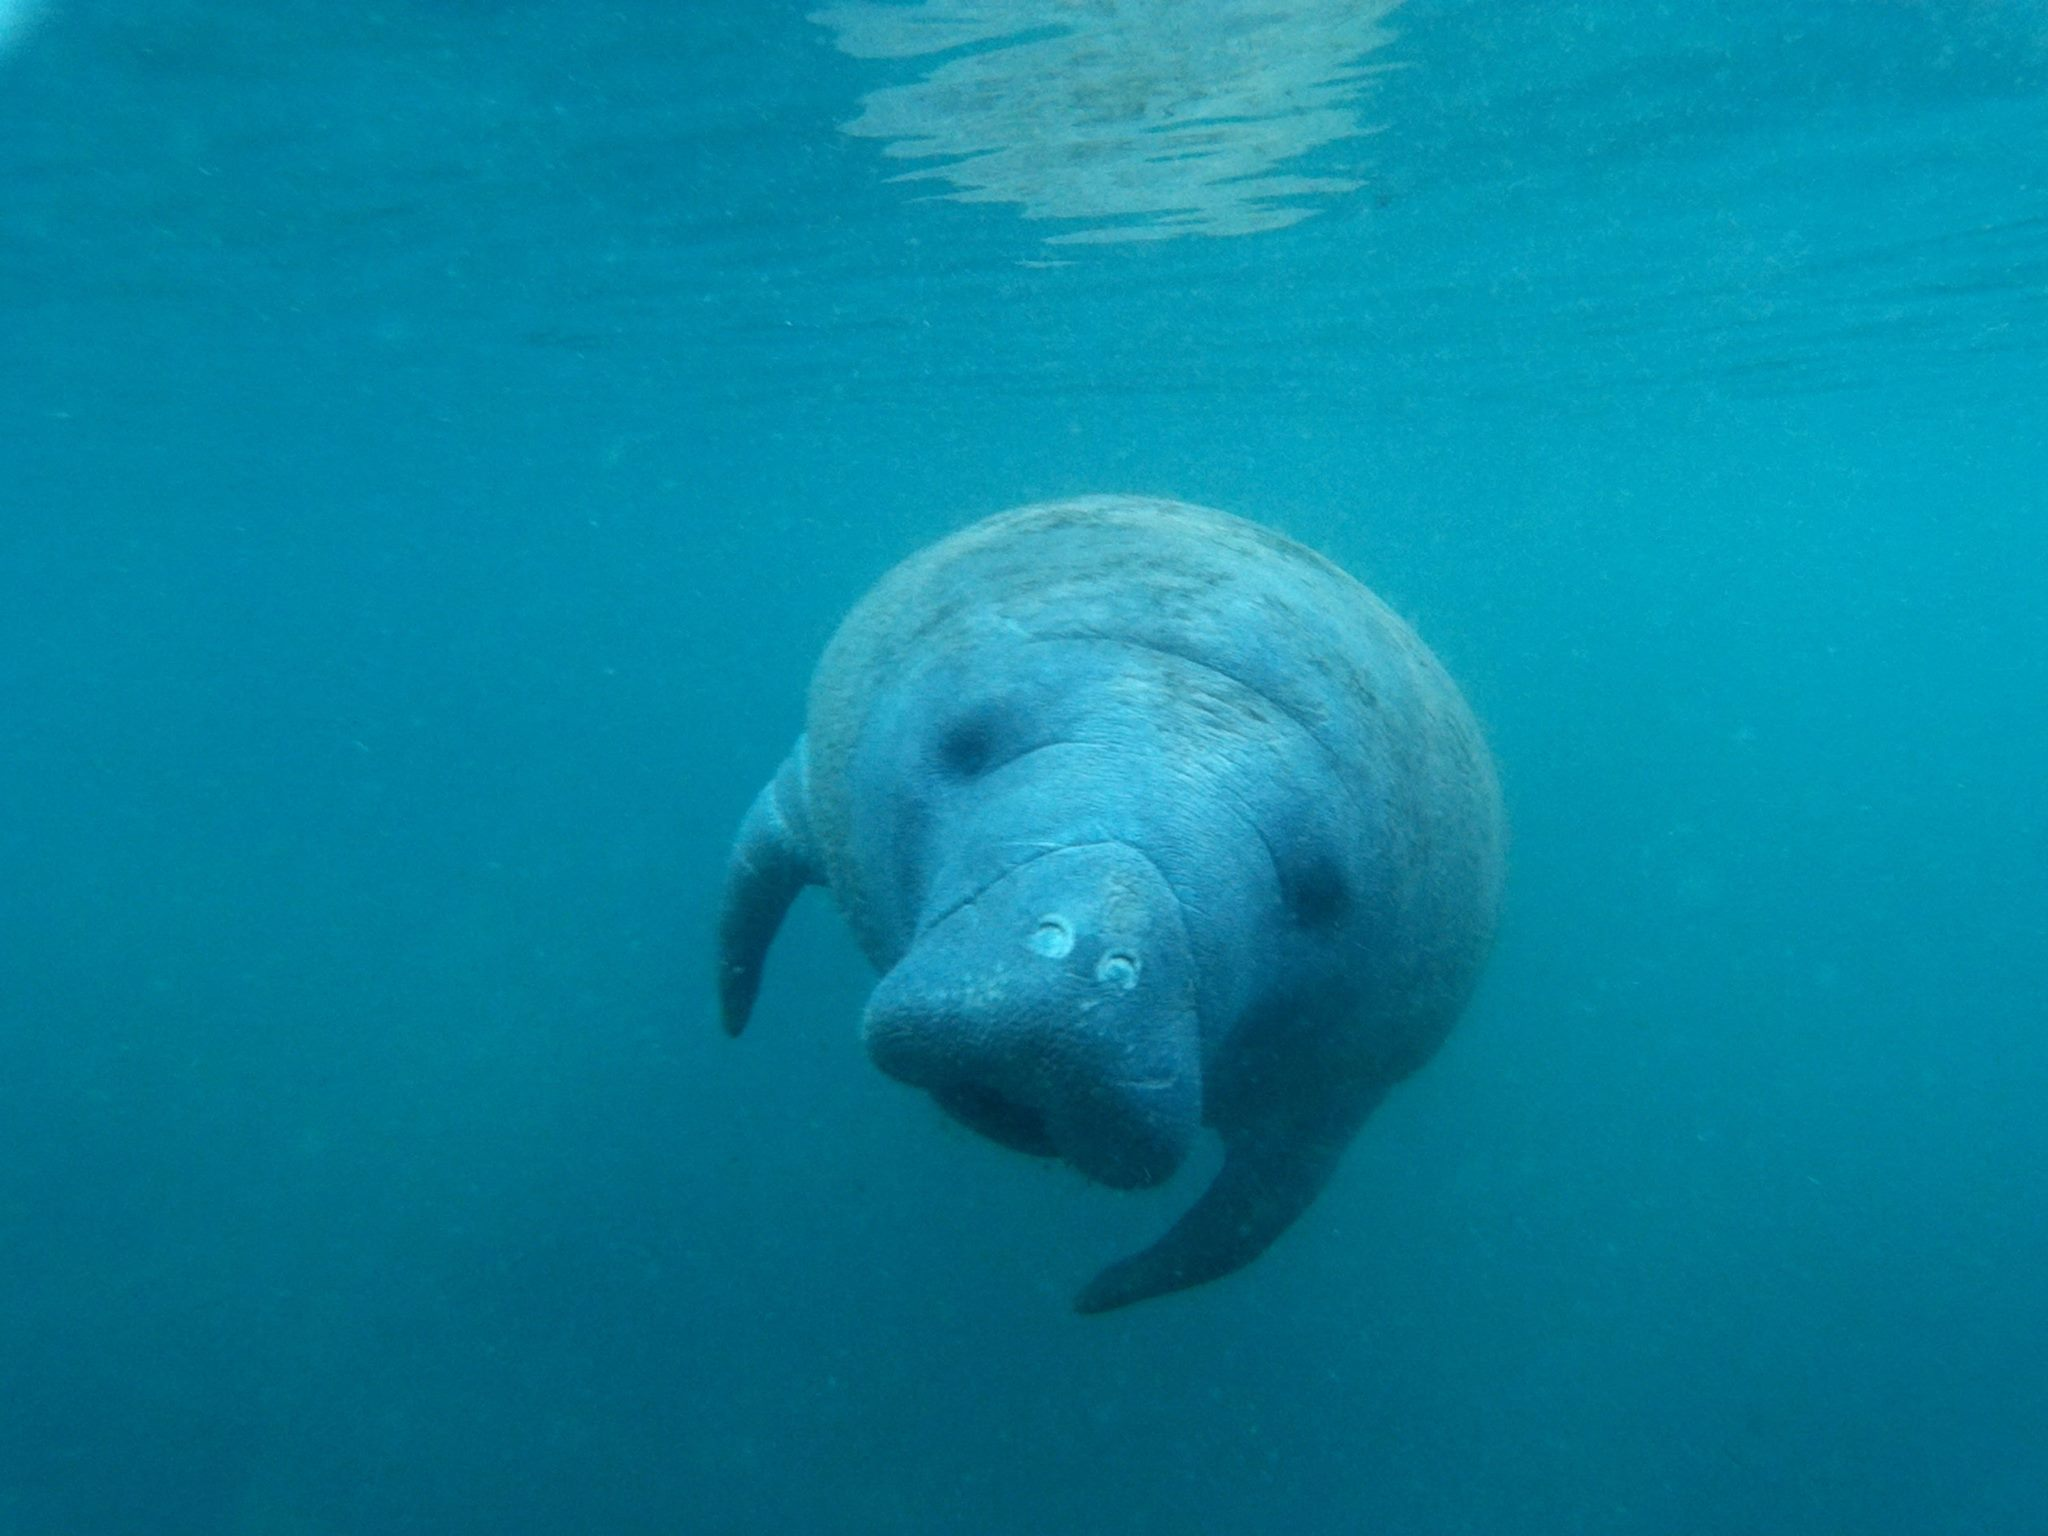 Responsible Tip. How To See Manatee Safely in the Wild